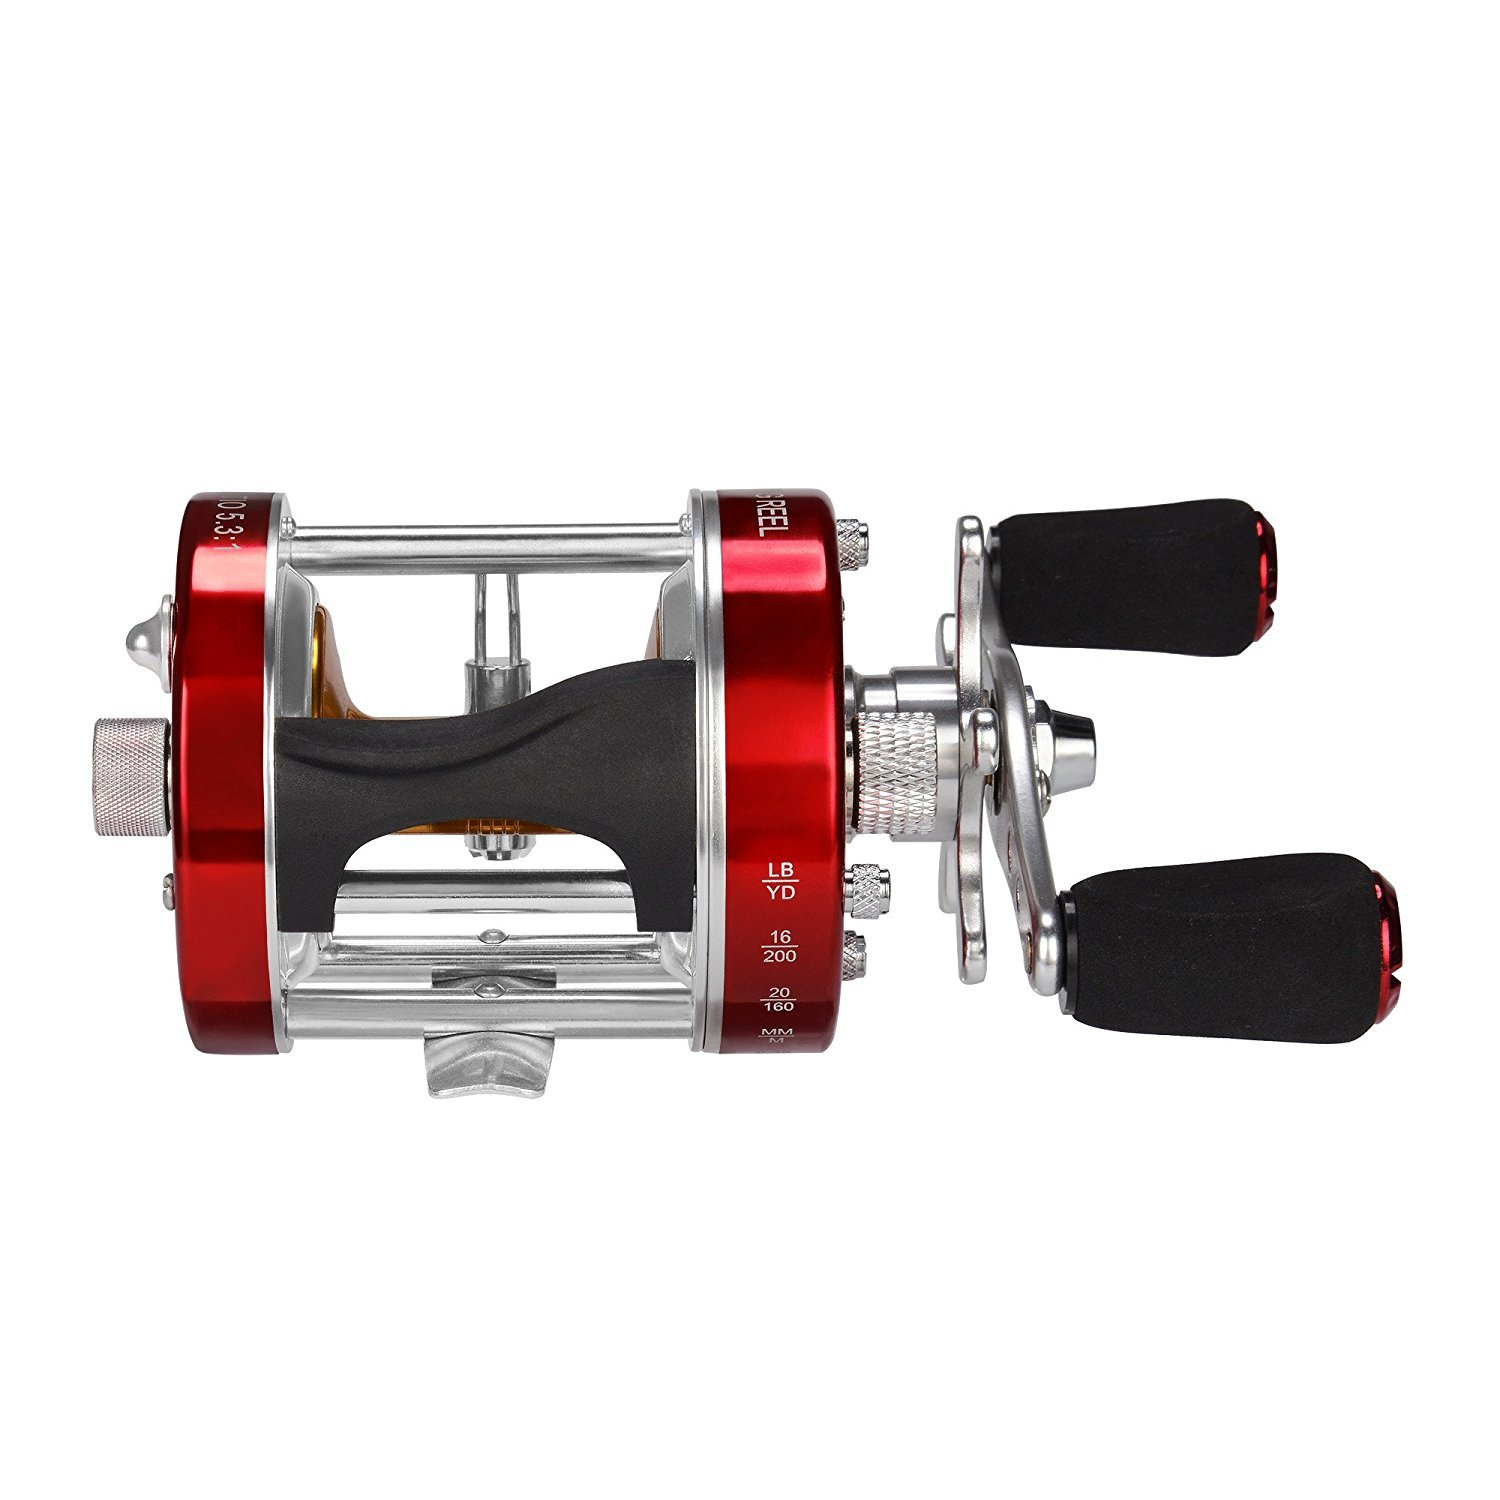 KastKing Rover Round Baitcasting Reel, Right Handed Reel,Rover60 by KastKing (Image #5)